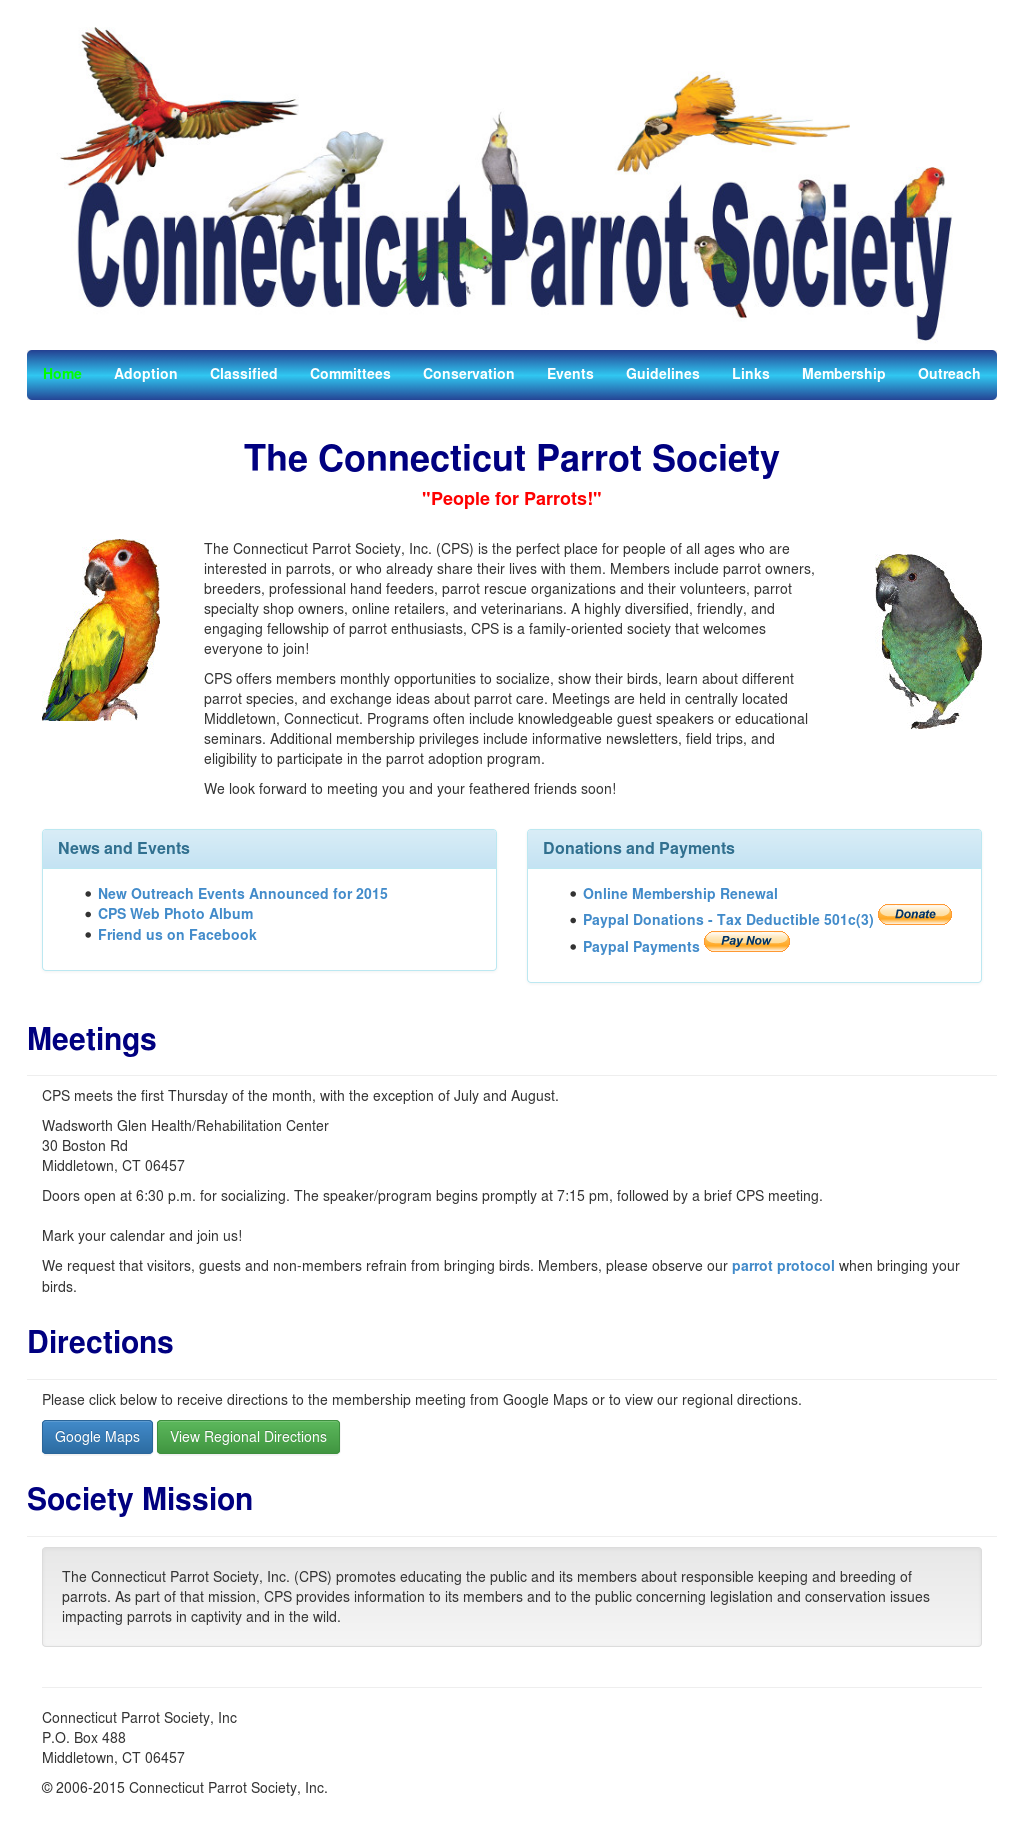 Connecticut Parrot Society Competitors, Revenue and Employees